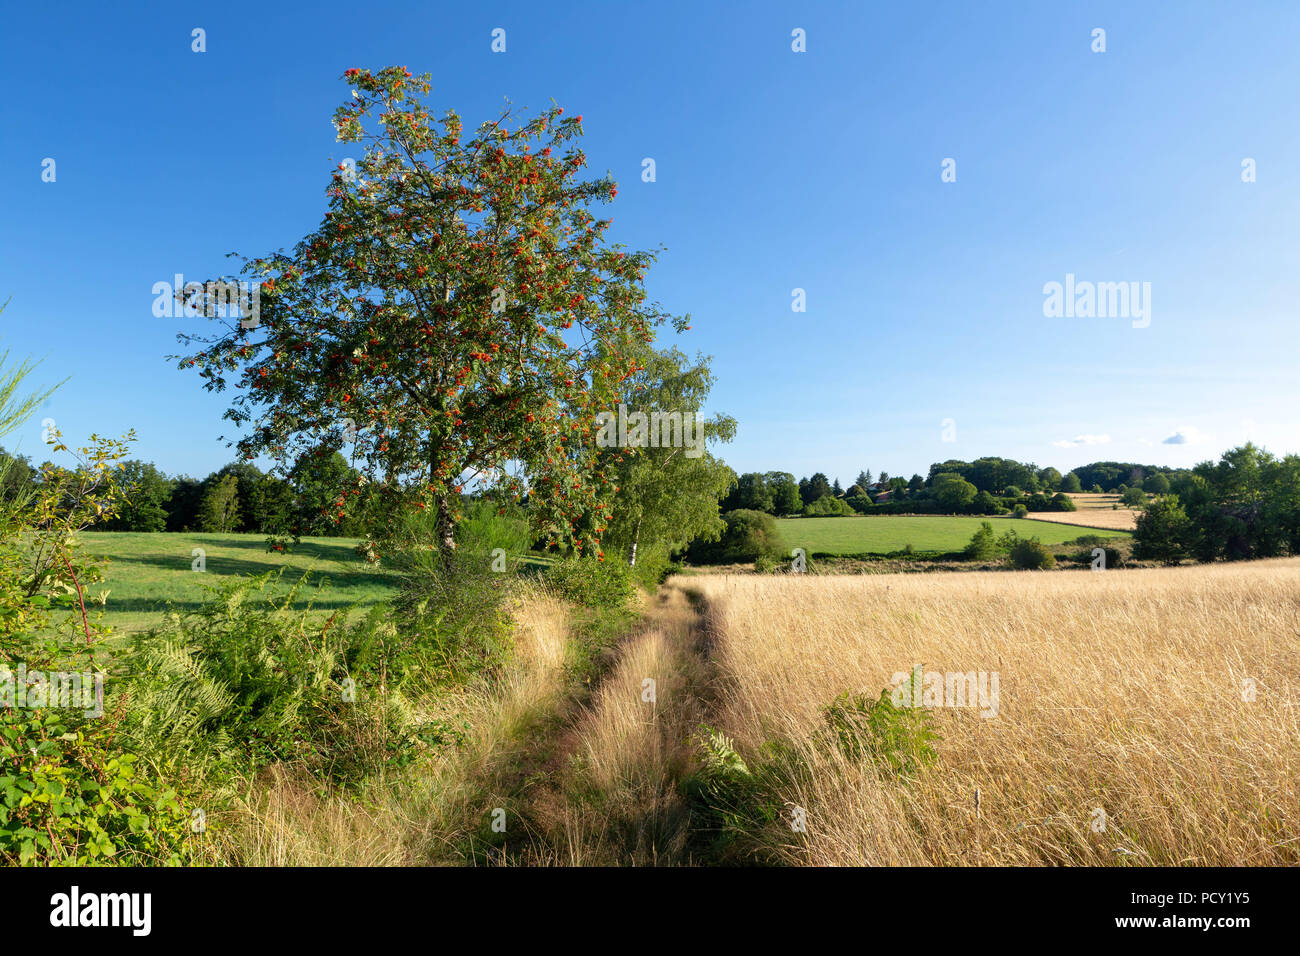 Typical Limousin landscape, France. - Stock Image